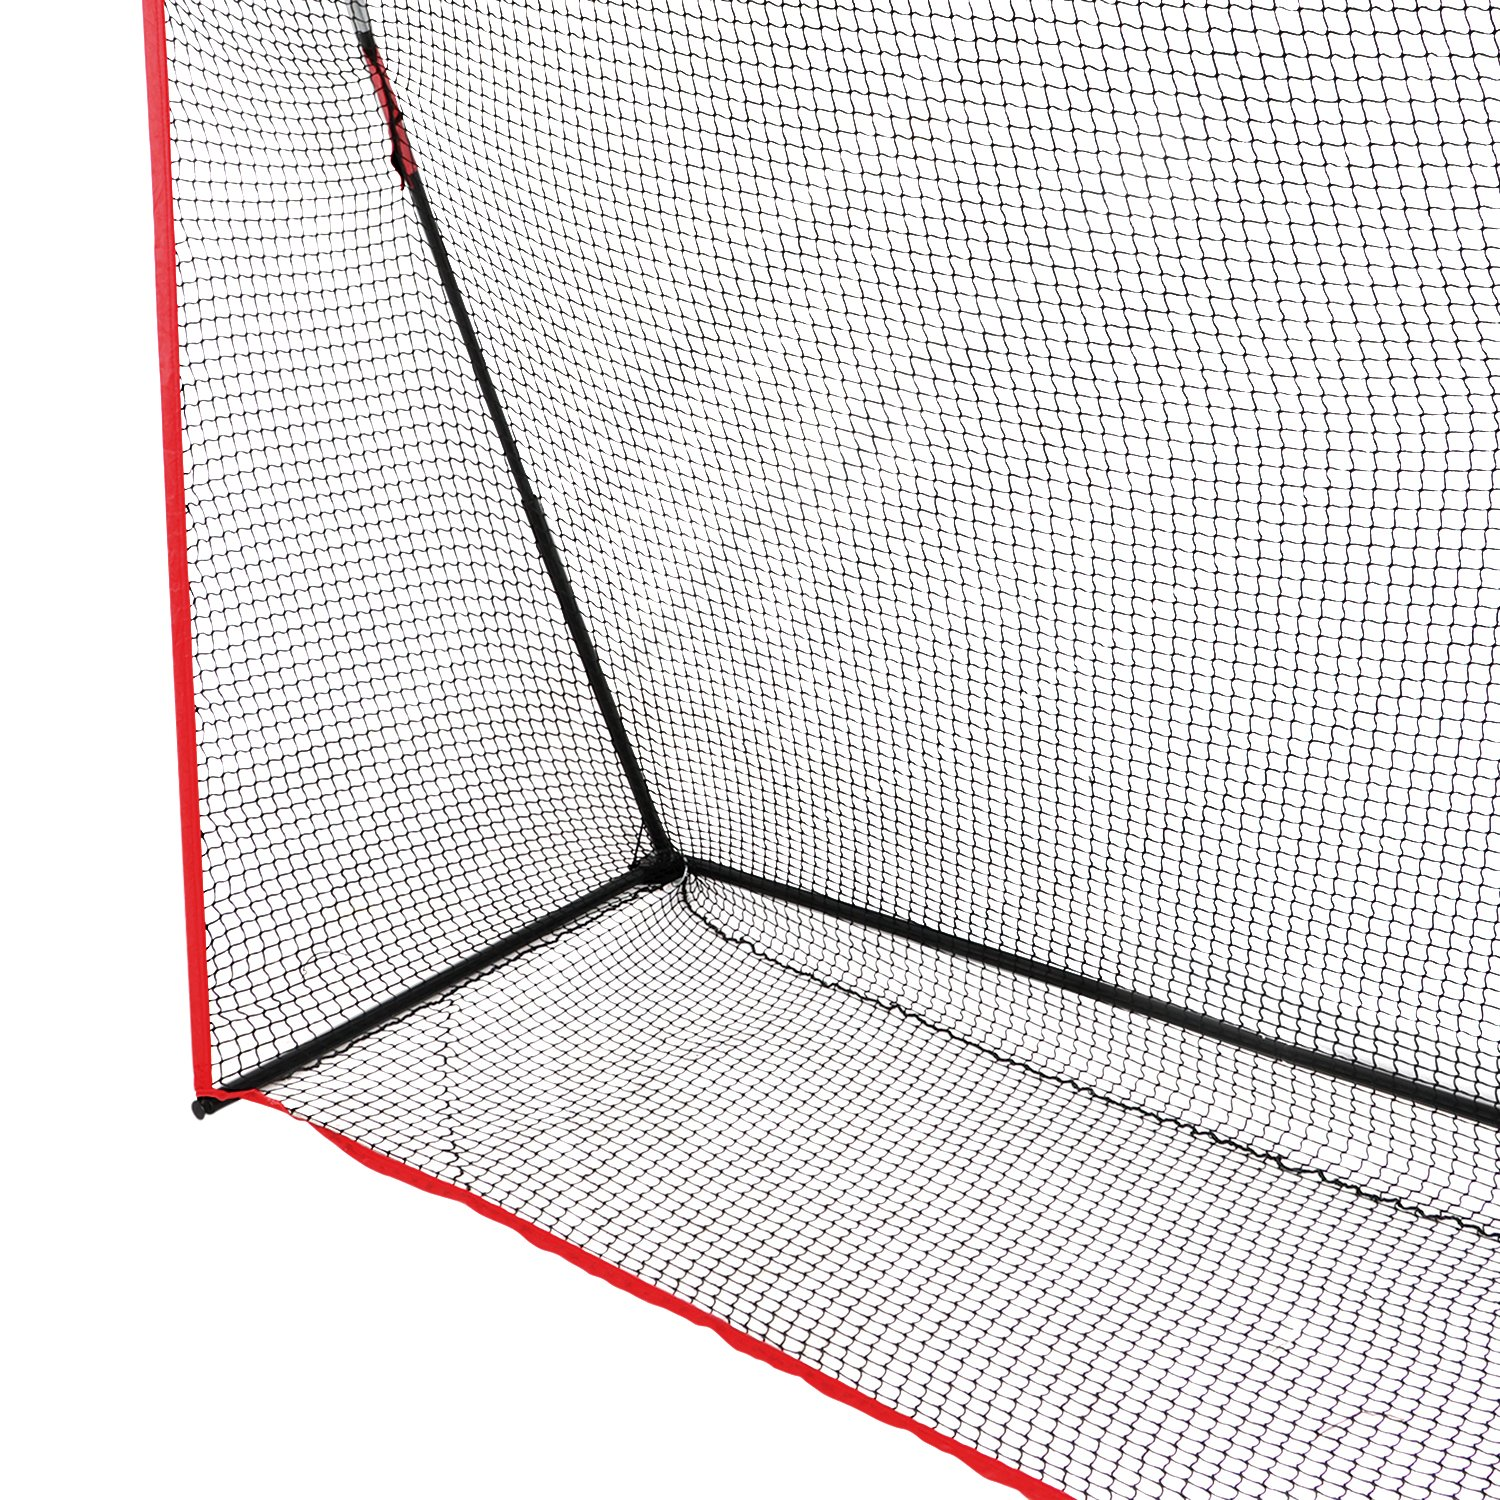 Nova Microdermabrasion Large 10x7ft Portable Golf Net Hitting Net Practice Driving Indoor Outdoor w Carry Bag